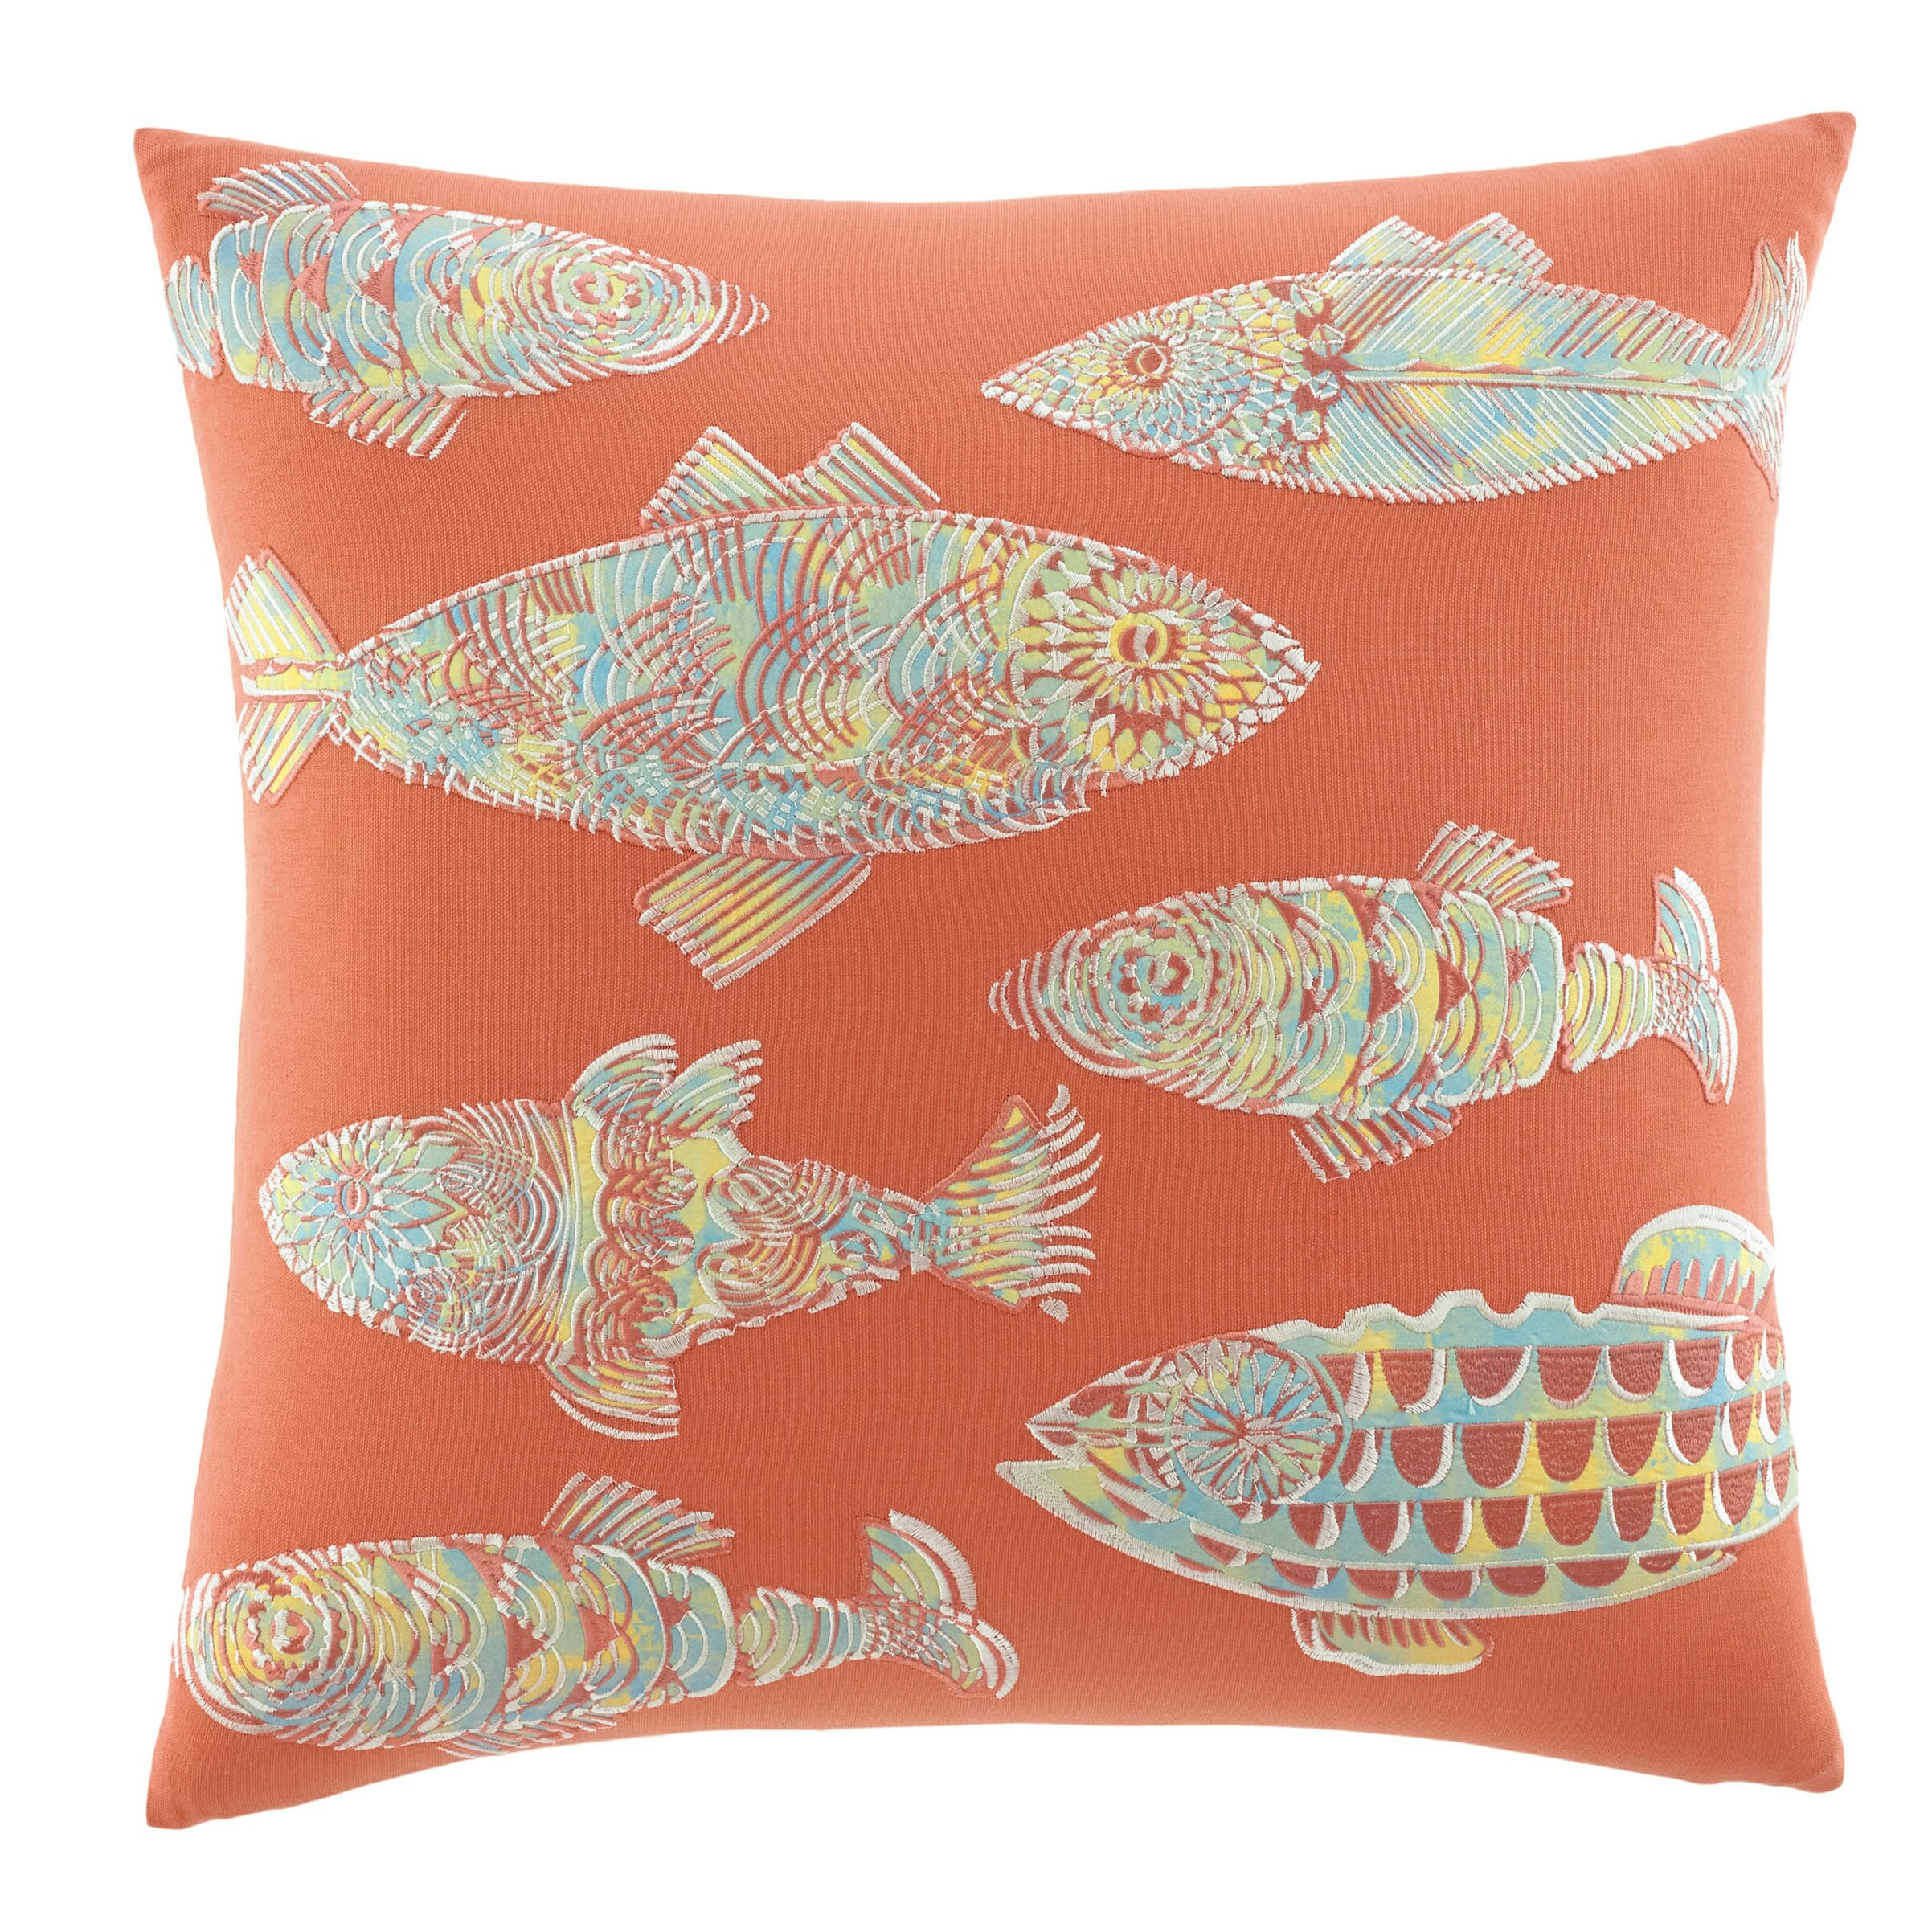 Tommy Bahama Decorative Bed Pillows : Tommy Bahama Bedding Batic Fish Cotton Decorative Throw Pillow & Reviews Wayfair